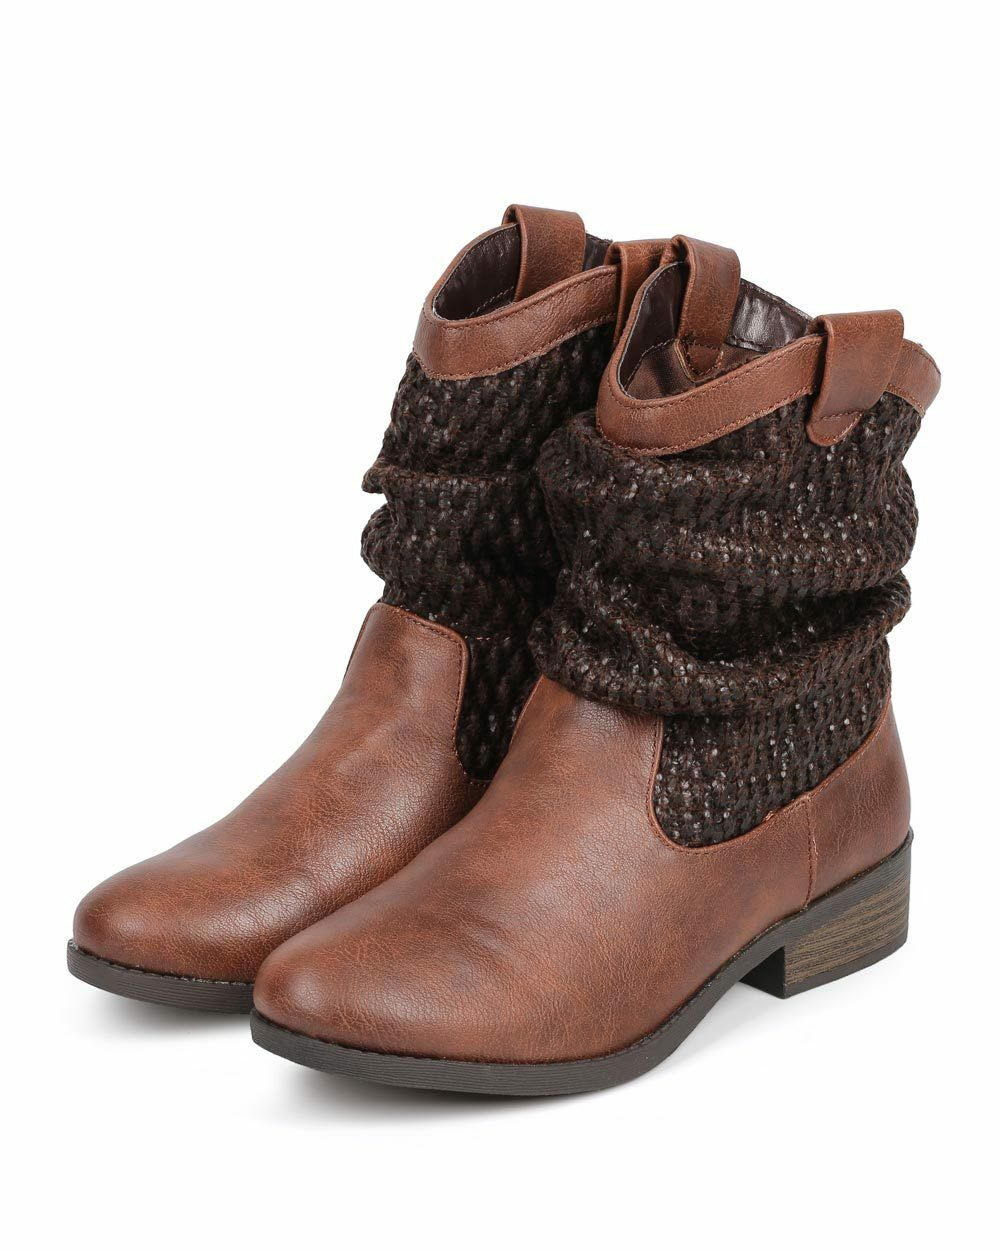 New Women Qupid Plateau-76 Distressed PU Raffia Cowboy Slouch Riding Boot Size